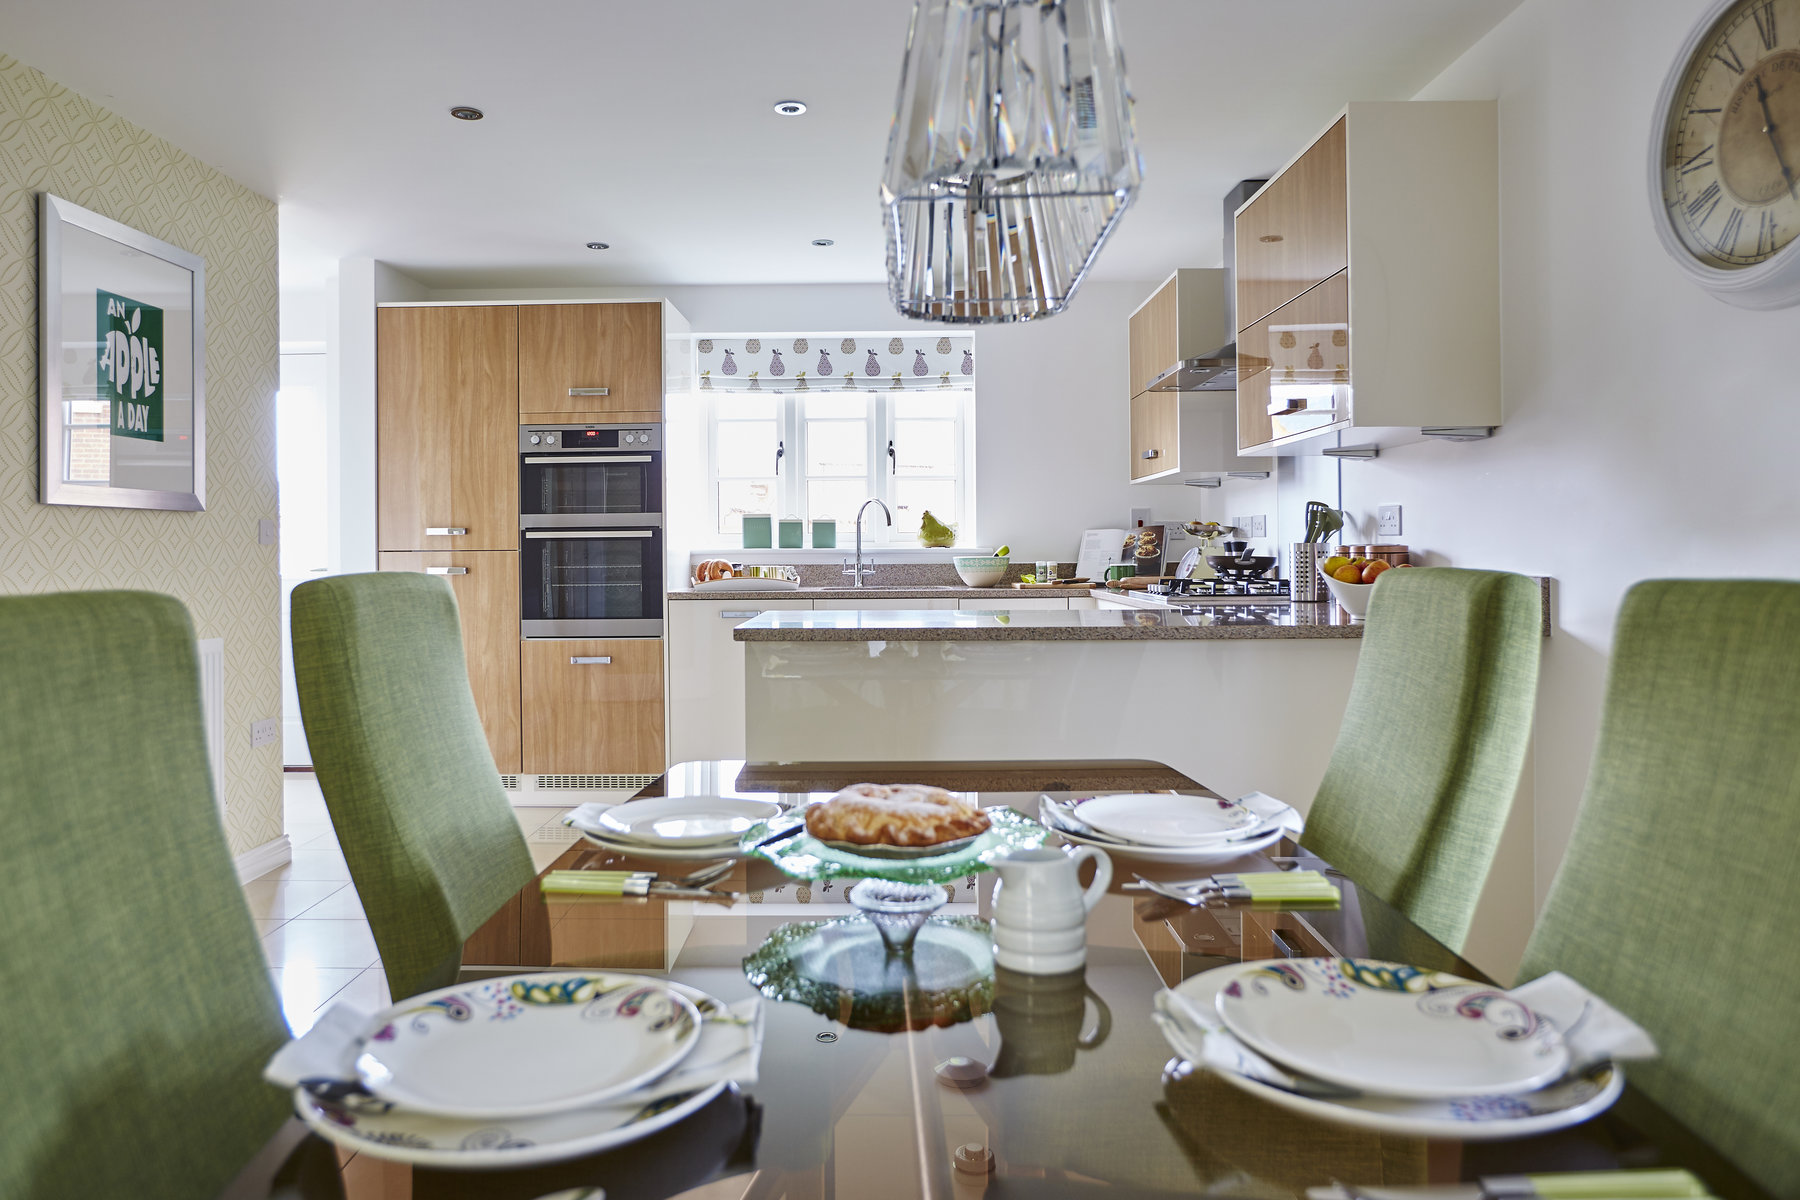 rsz_tw_smids_chestnut_grove_brackley_pt41_eskdale_dining__kitchen_2